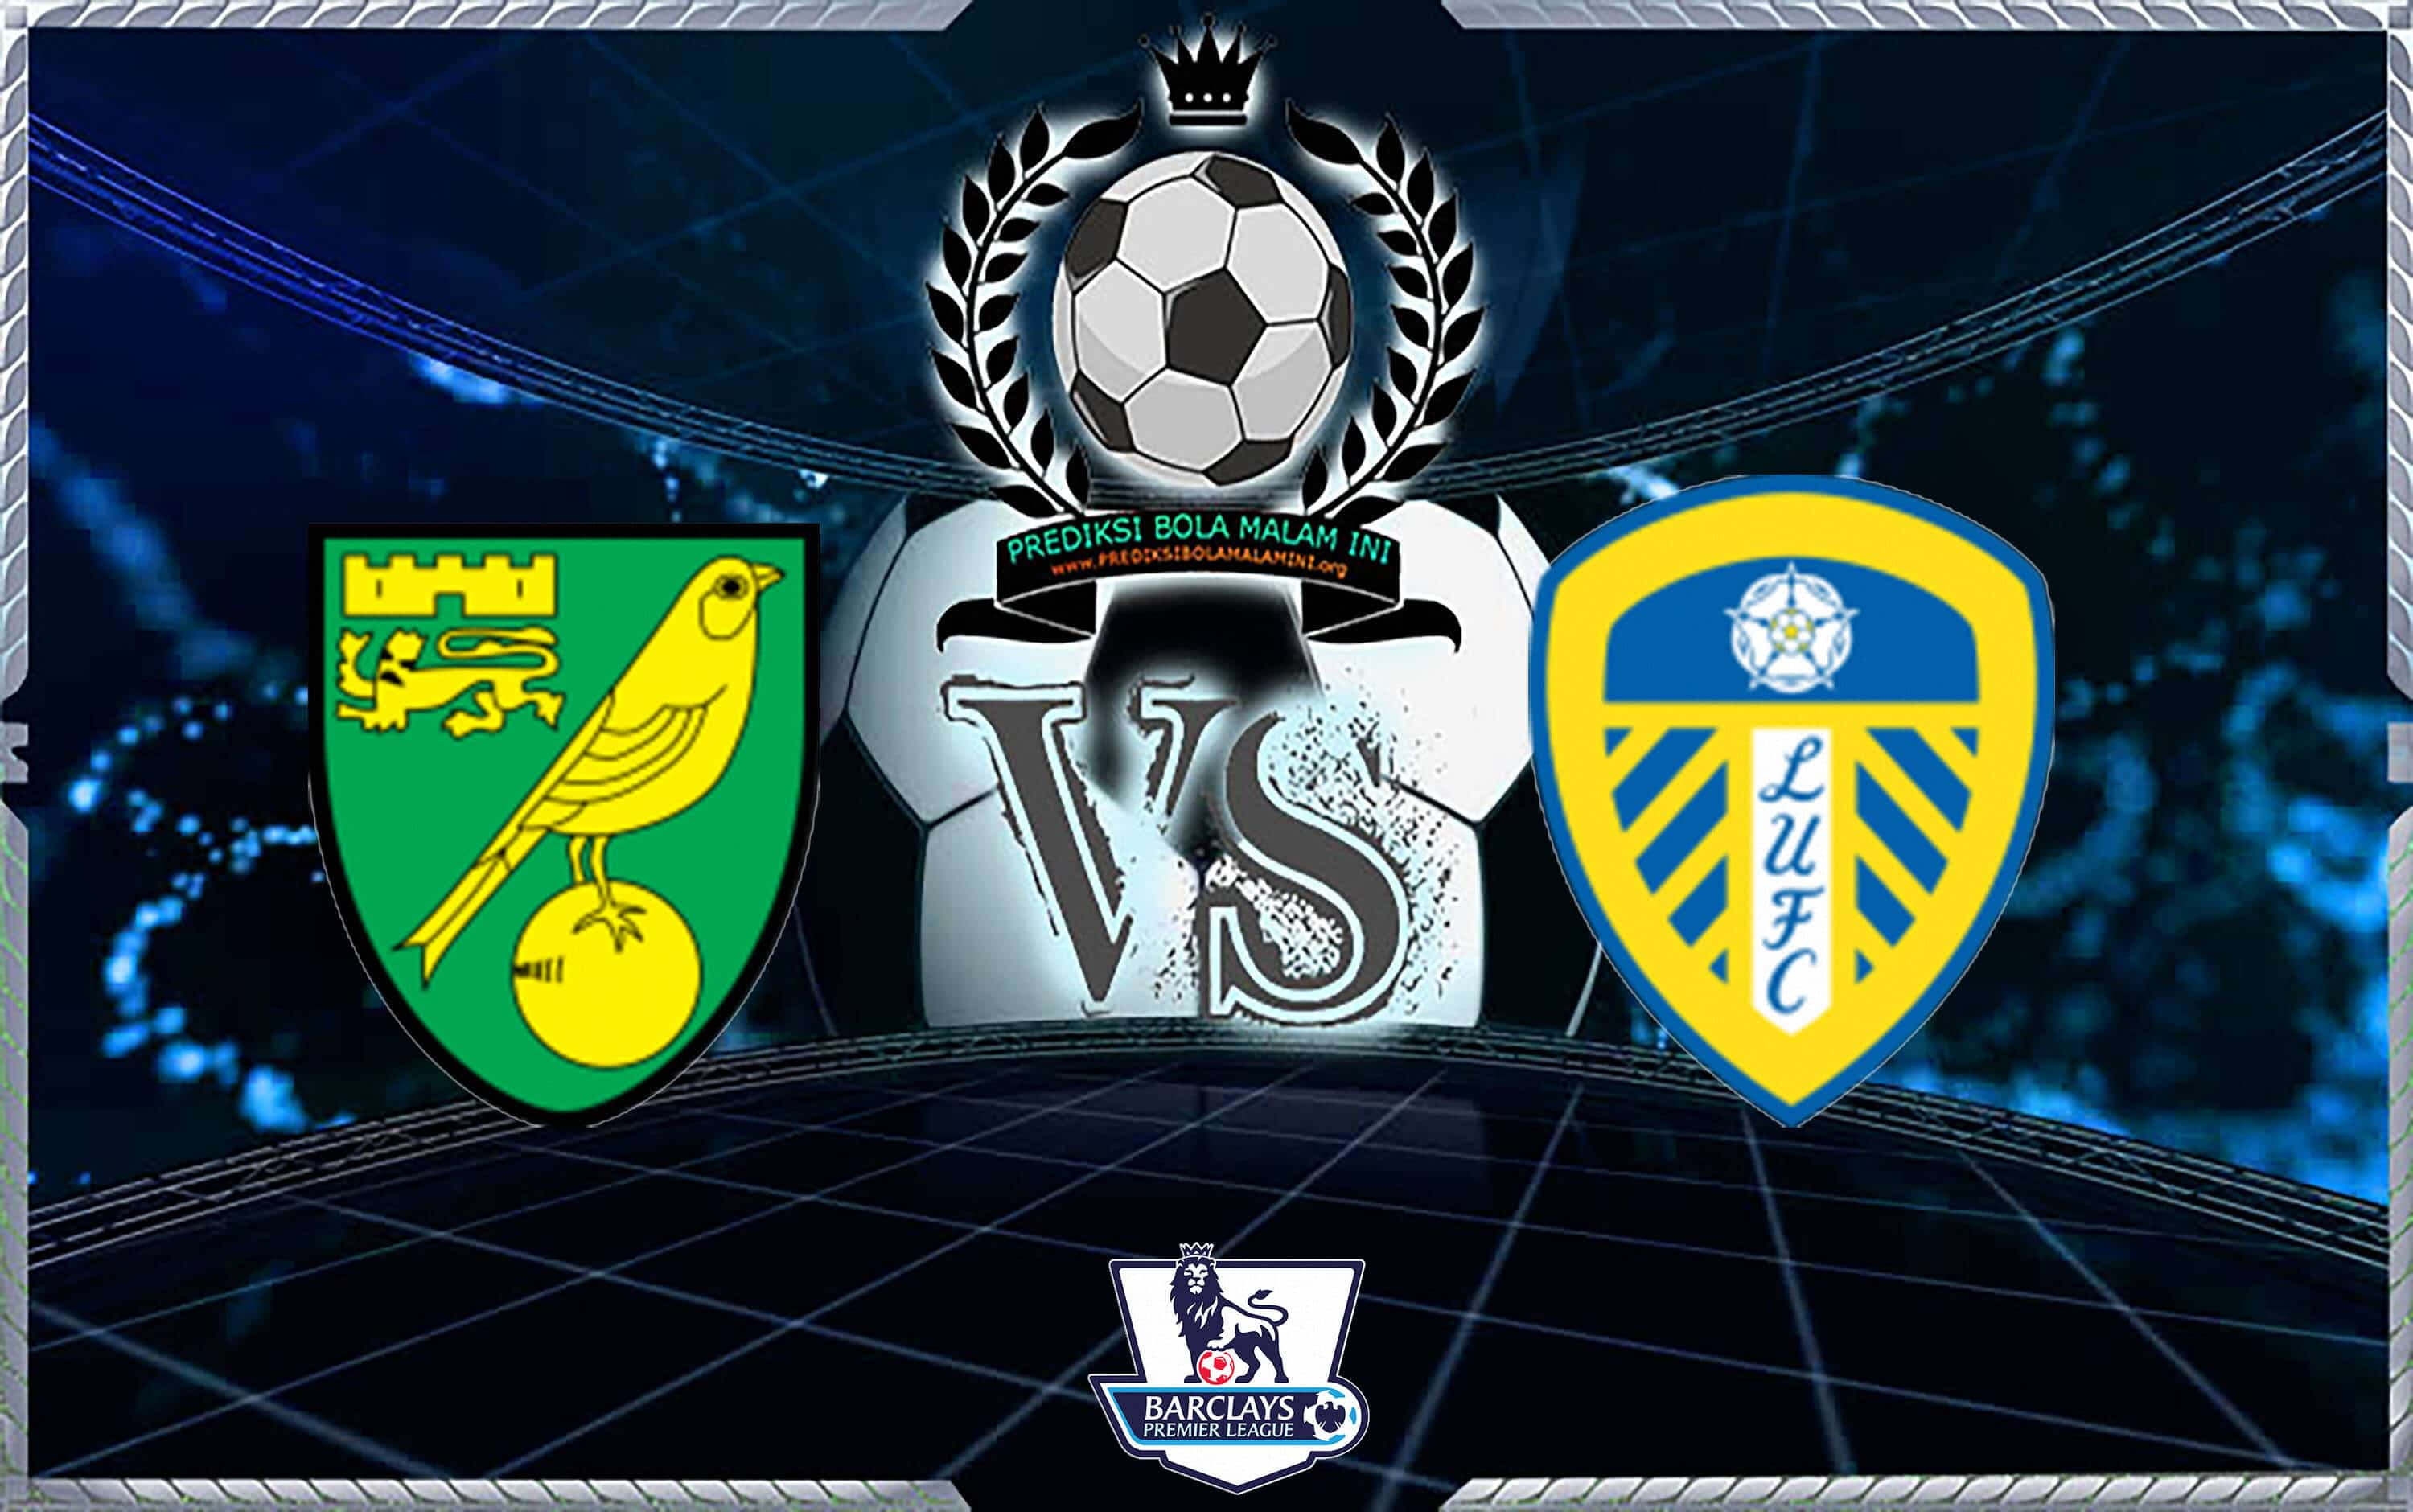 NORWICH CITY Vs LEEDS UNITED, Prediksi Skor NORWICH CITY Vs LEEDS UNITED, Prediksi Skor NORWICH CITY Vs LEEDS UNITED, Prediksi Skor NORWICH CITY Vs LEEDS UNITED, Prediksi Skor NORWICH CITY Vs LEEDS UNITED, Prediksi Skor NORWICH CITY Vs LEEDS UNITED, Prediksi Skor NORWICH CITY Vs LEEDS UNITED, Prediksi Skor NORWICH CITY Vs LEEDS UNITED, NORWICH CITY Vs LEEDS UNITED, HASIL NORWICH CITY Vs LEEDS UNITED, NORWICH CITY Vs LEEDS UNITED </span></strong>  &#8211; <span style=